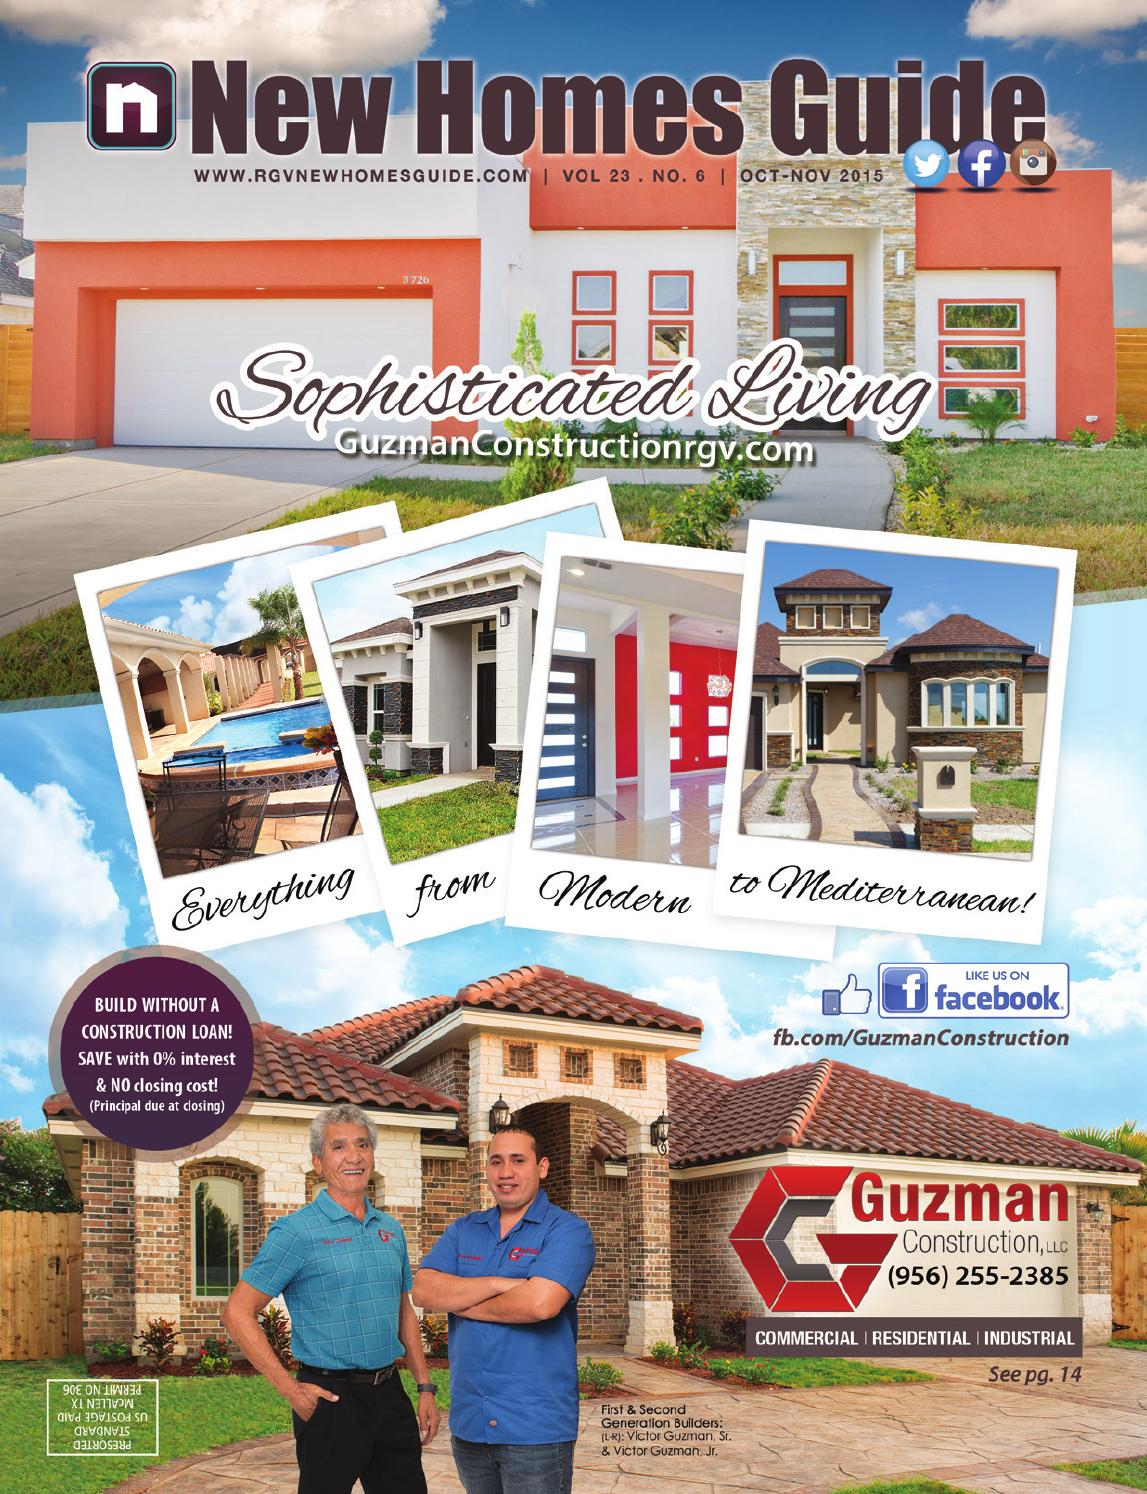 Rgv new homes guide vol 23 no 6 october november 2015 for Home builders guide